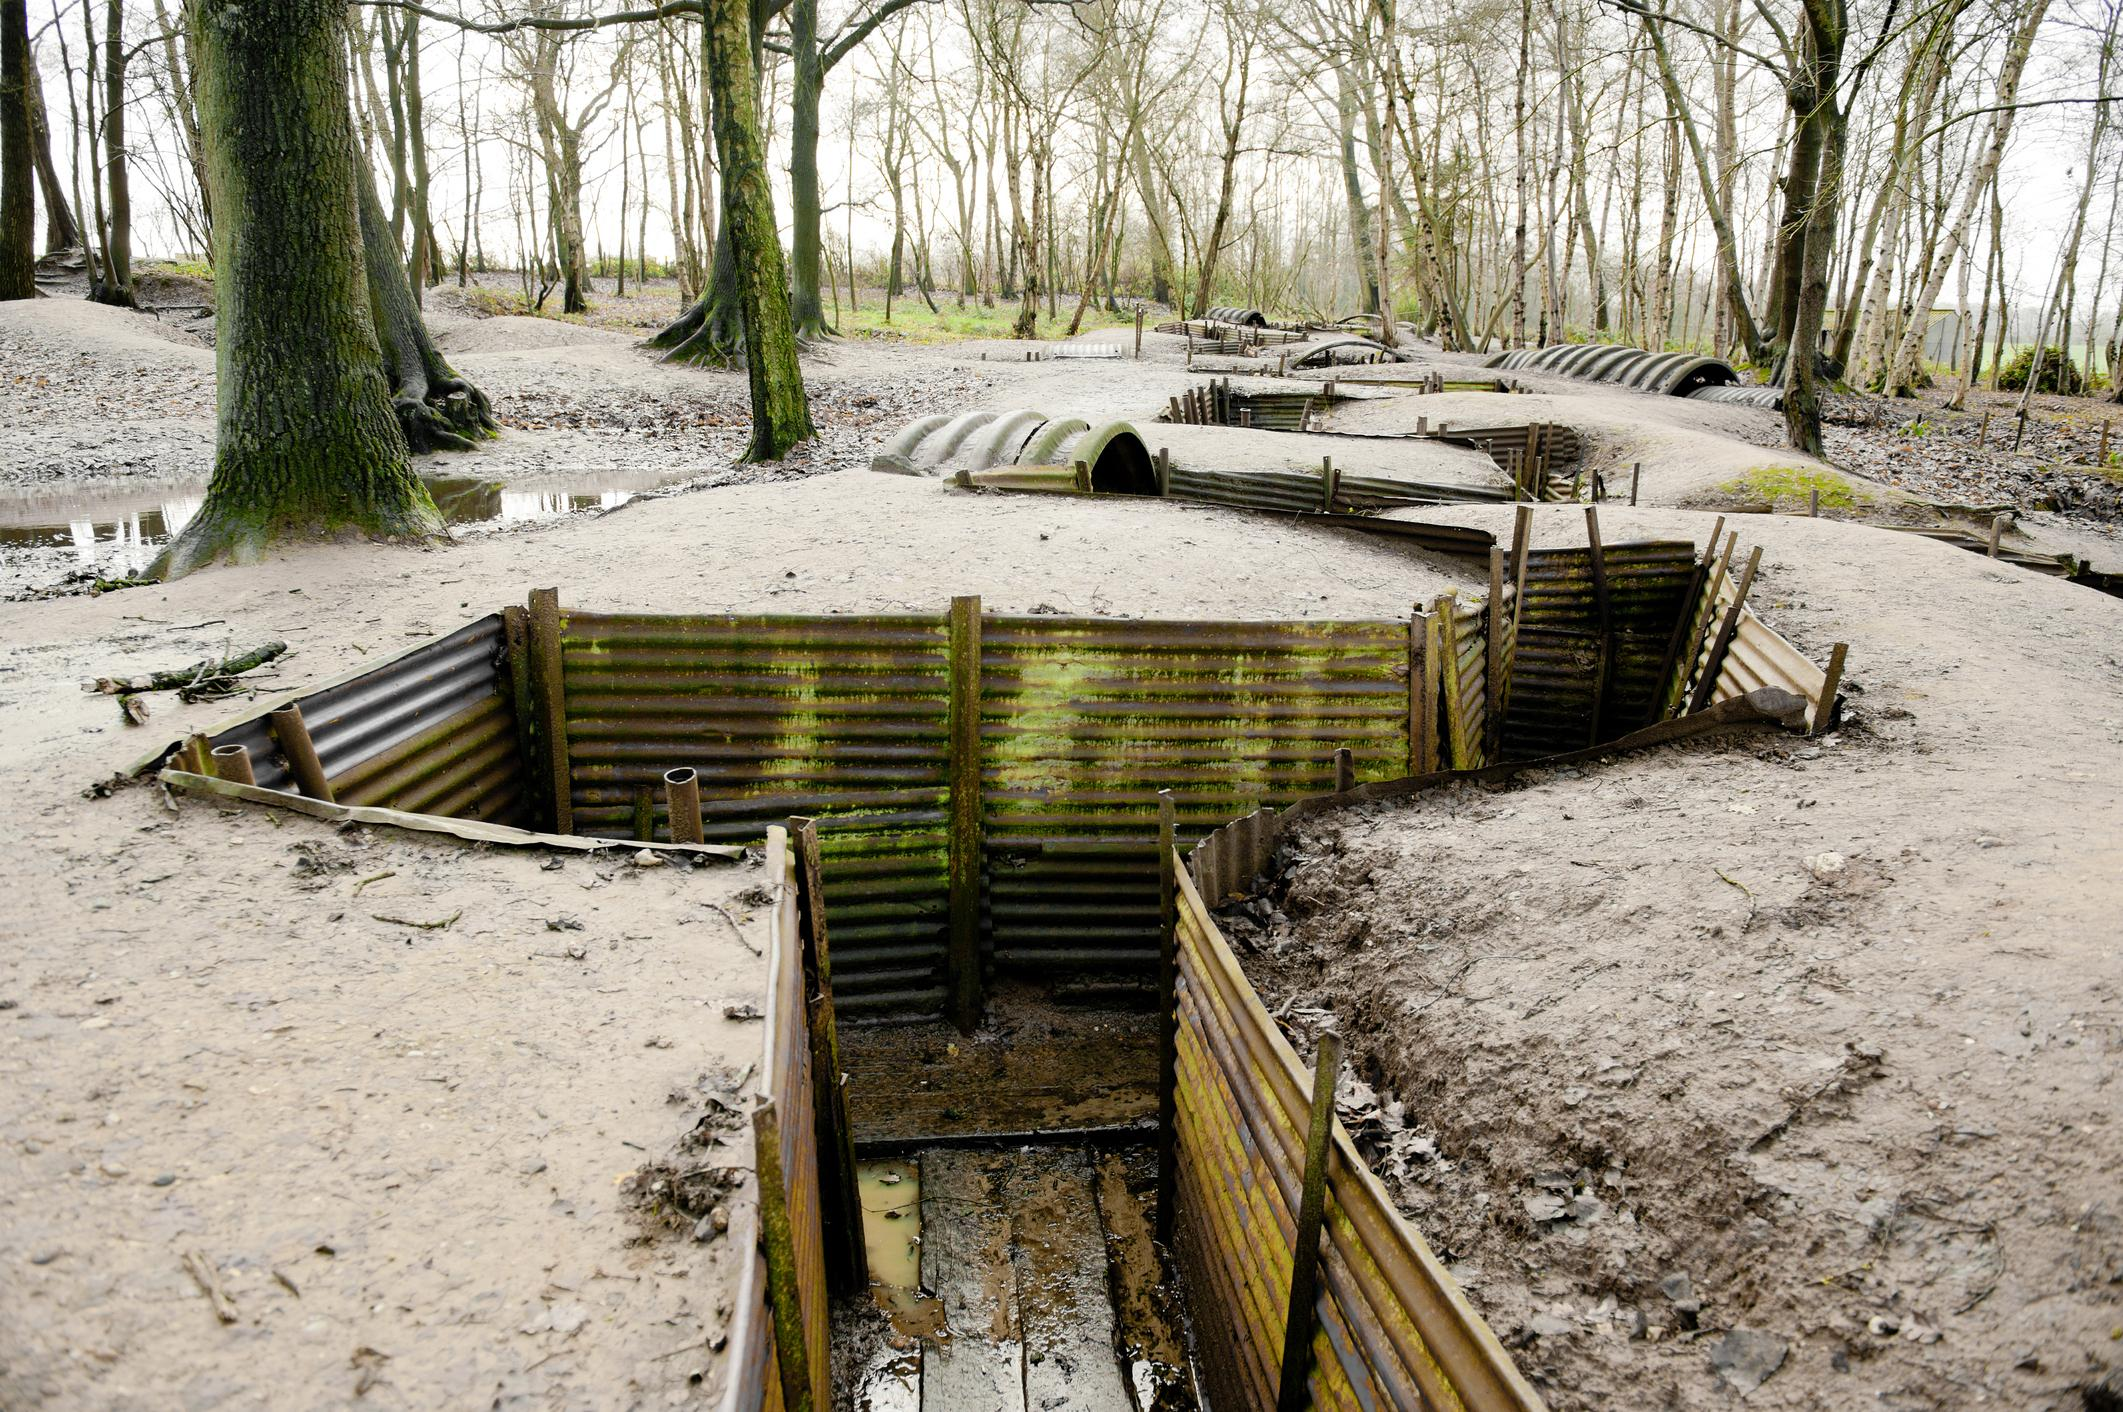 WWI Trenches, Sanctuary Wood, Ypres, Belgium